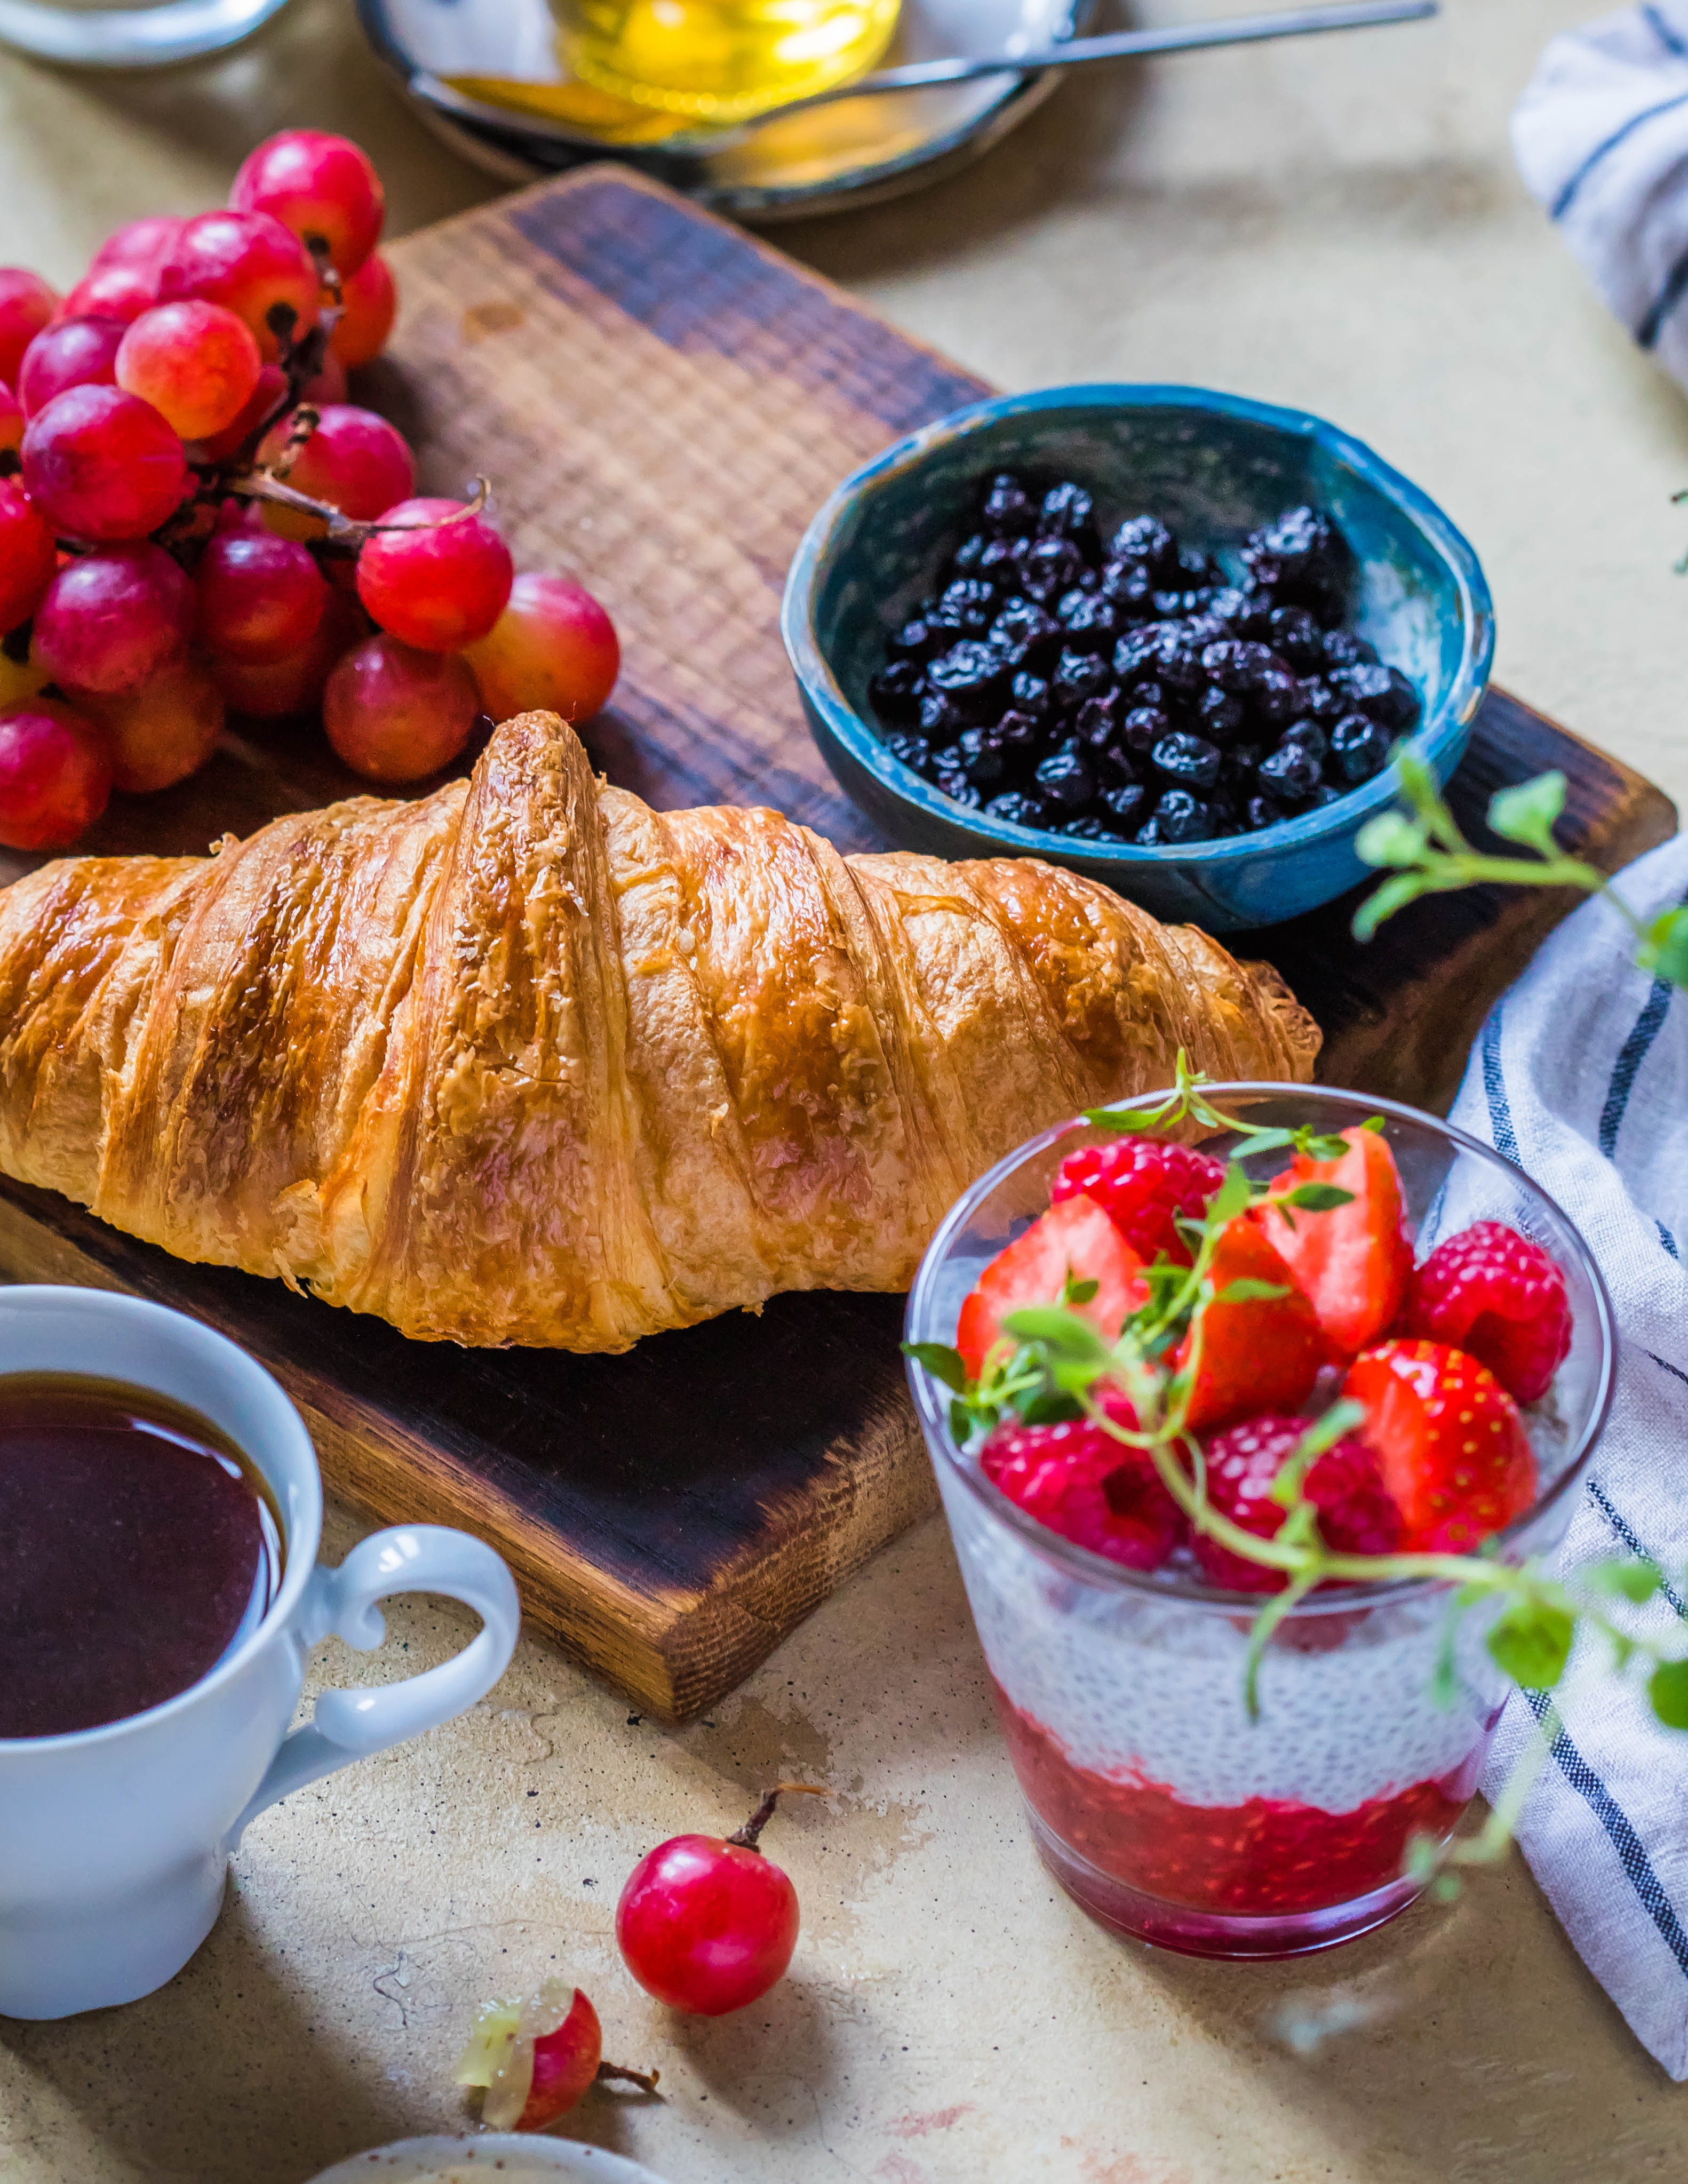 Celebrating an all-day treat on National Croissant Day